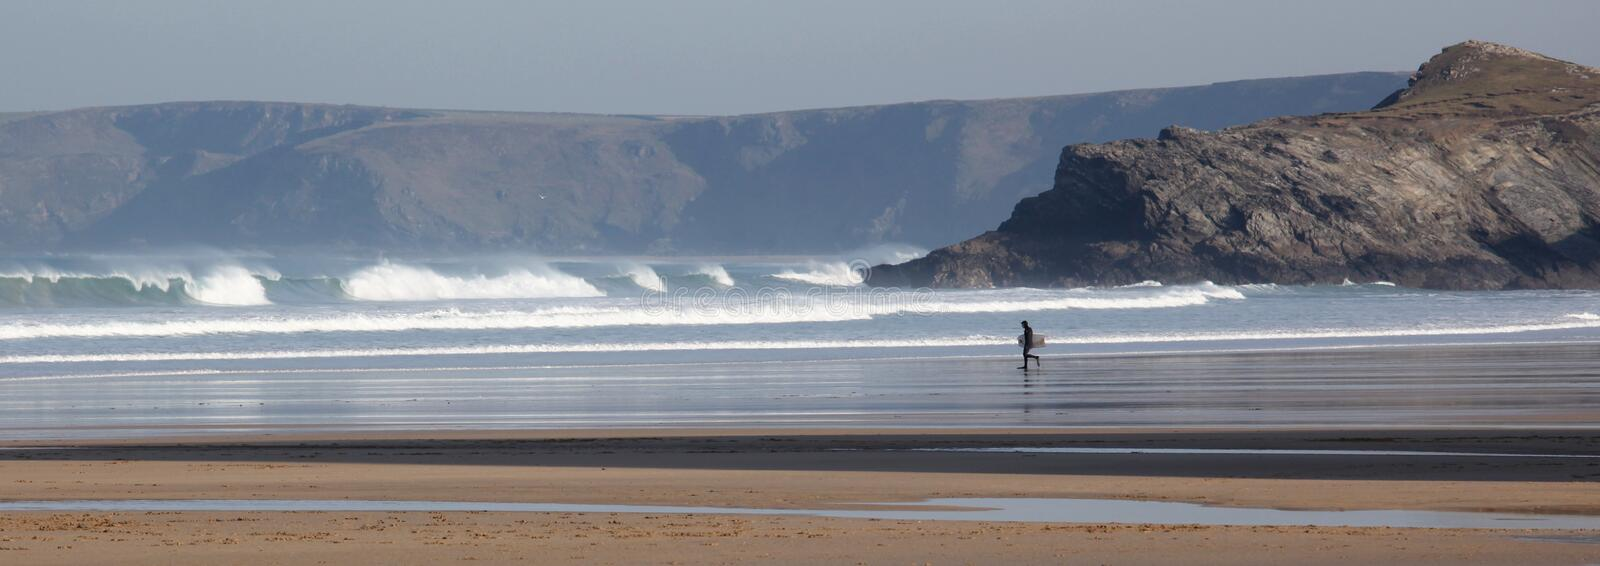 Download Body Boarder At Porth Beach Stock Image - Image: 23444127